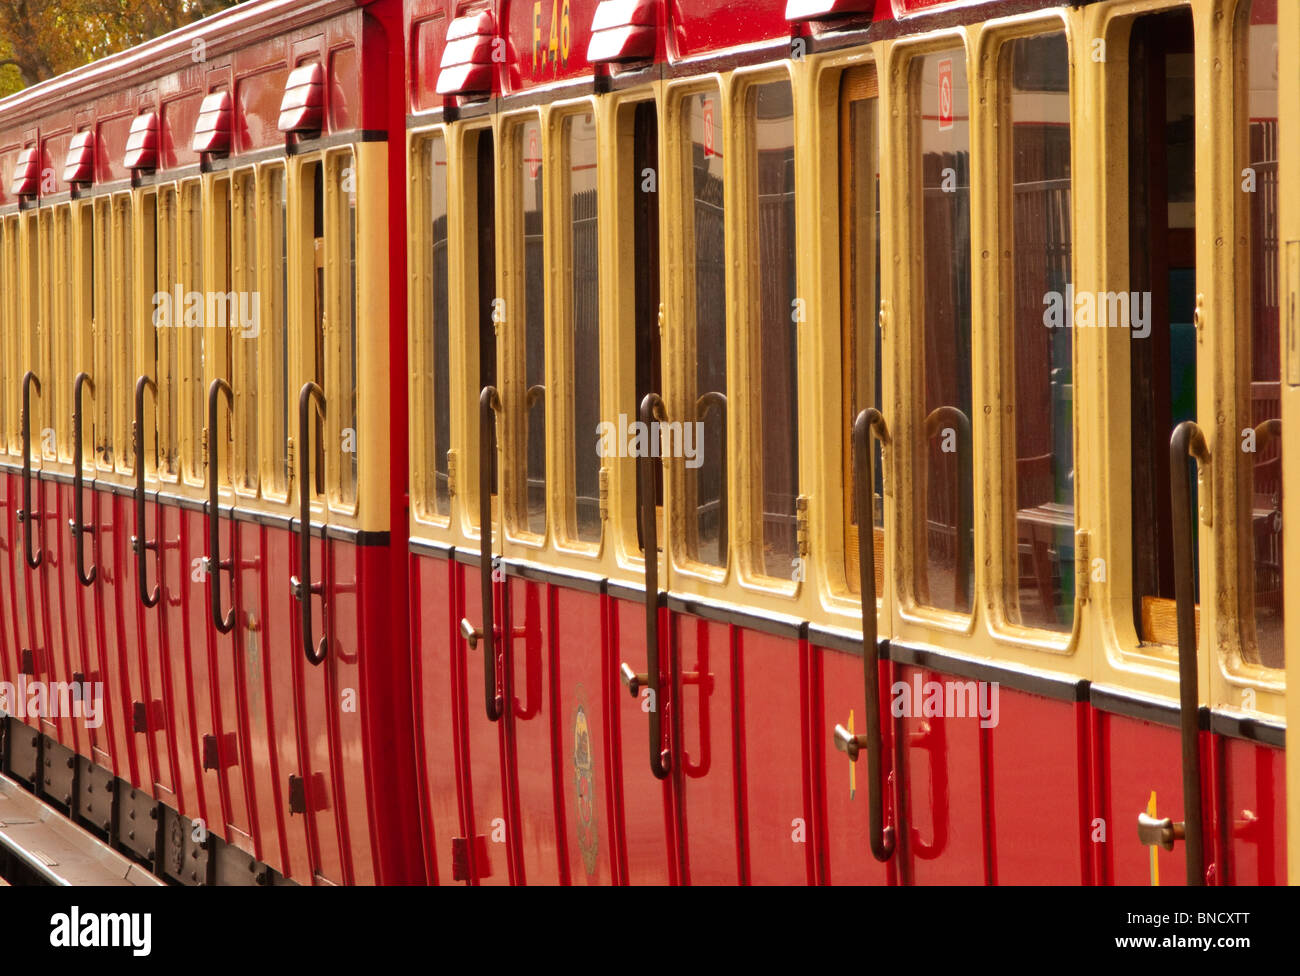 Steam railway carriages, Douglas, Isle of man - Stock Image